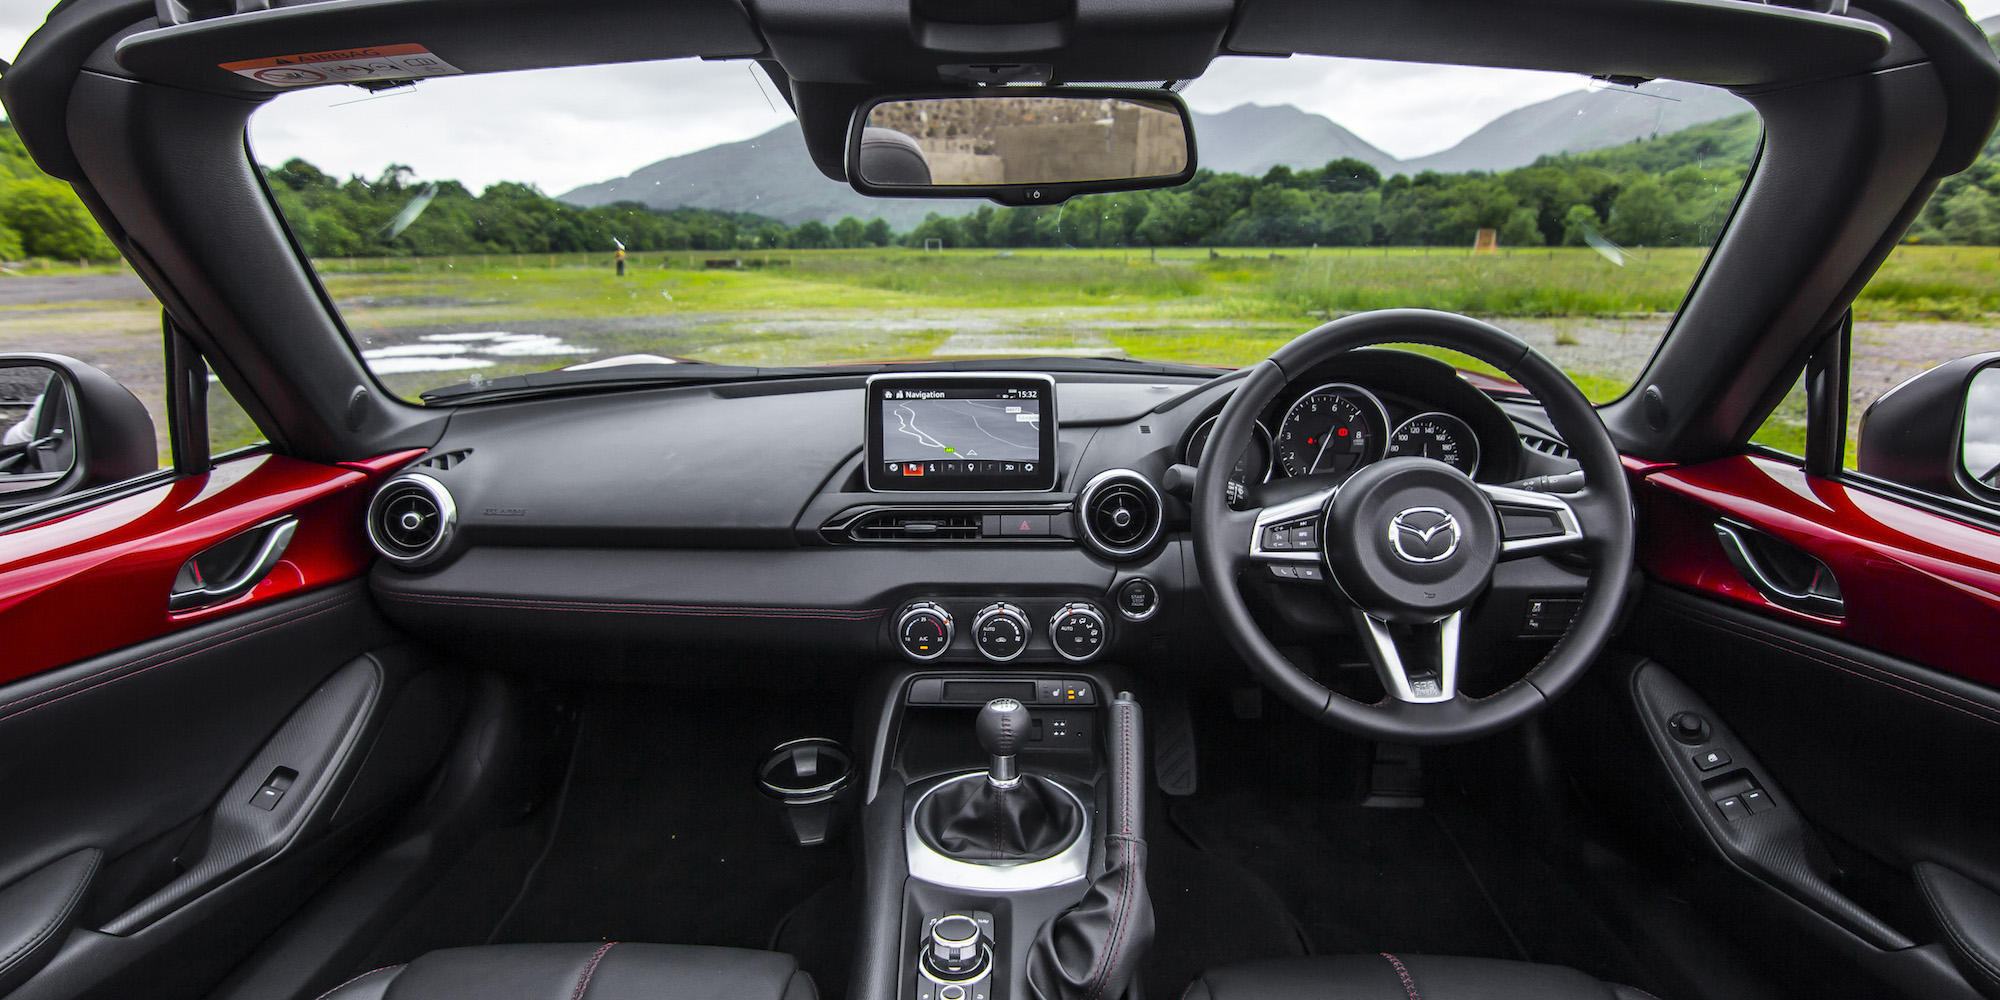 2016 Mazda Mx 5 Dashboard And Cockpit Interior (View 15 of 31)